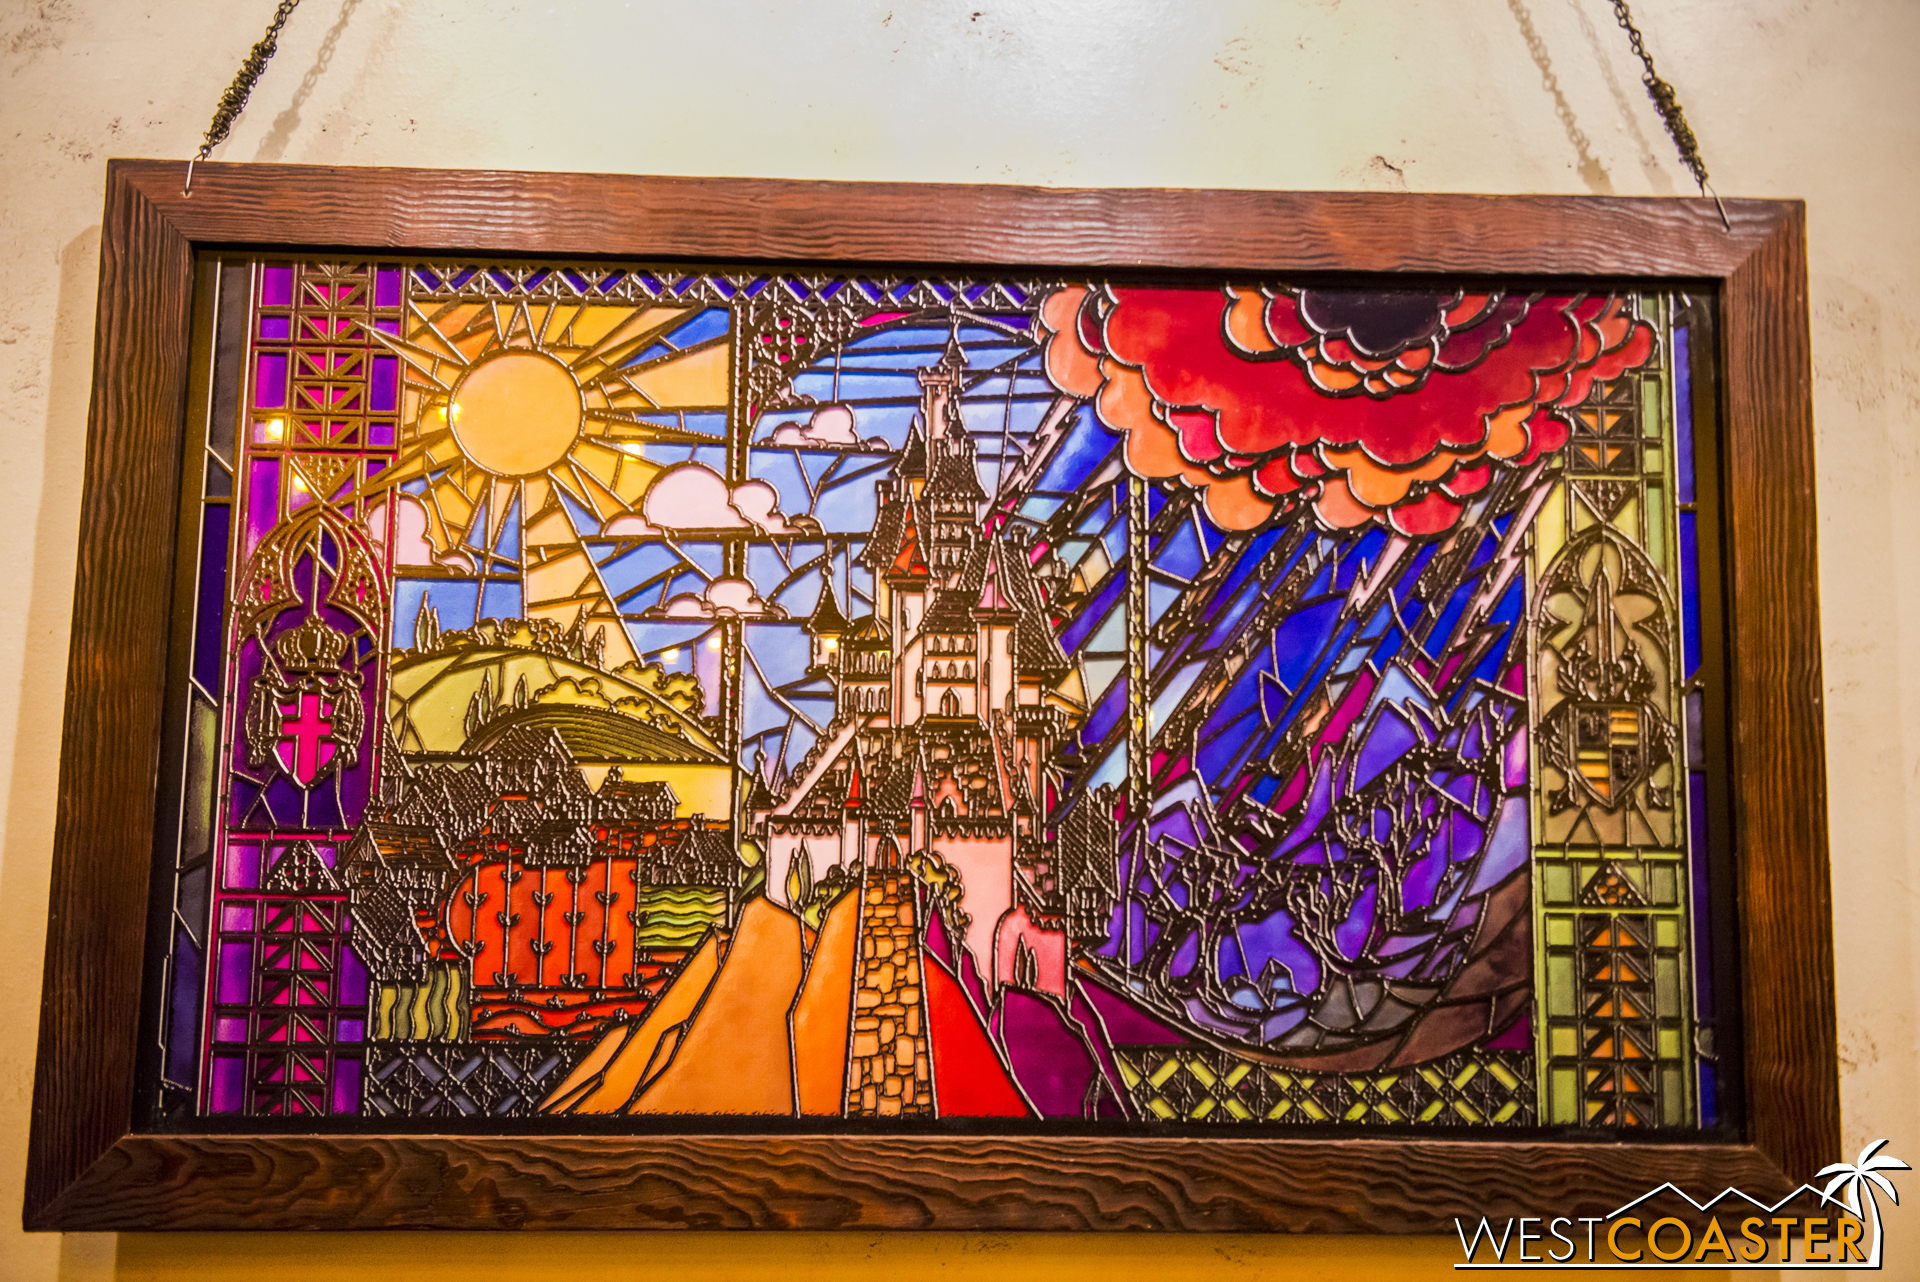 This lovely stained glass piece is on the wall opposite from Gaston's portrait and is gorgeous.